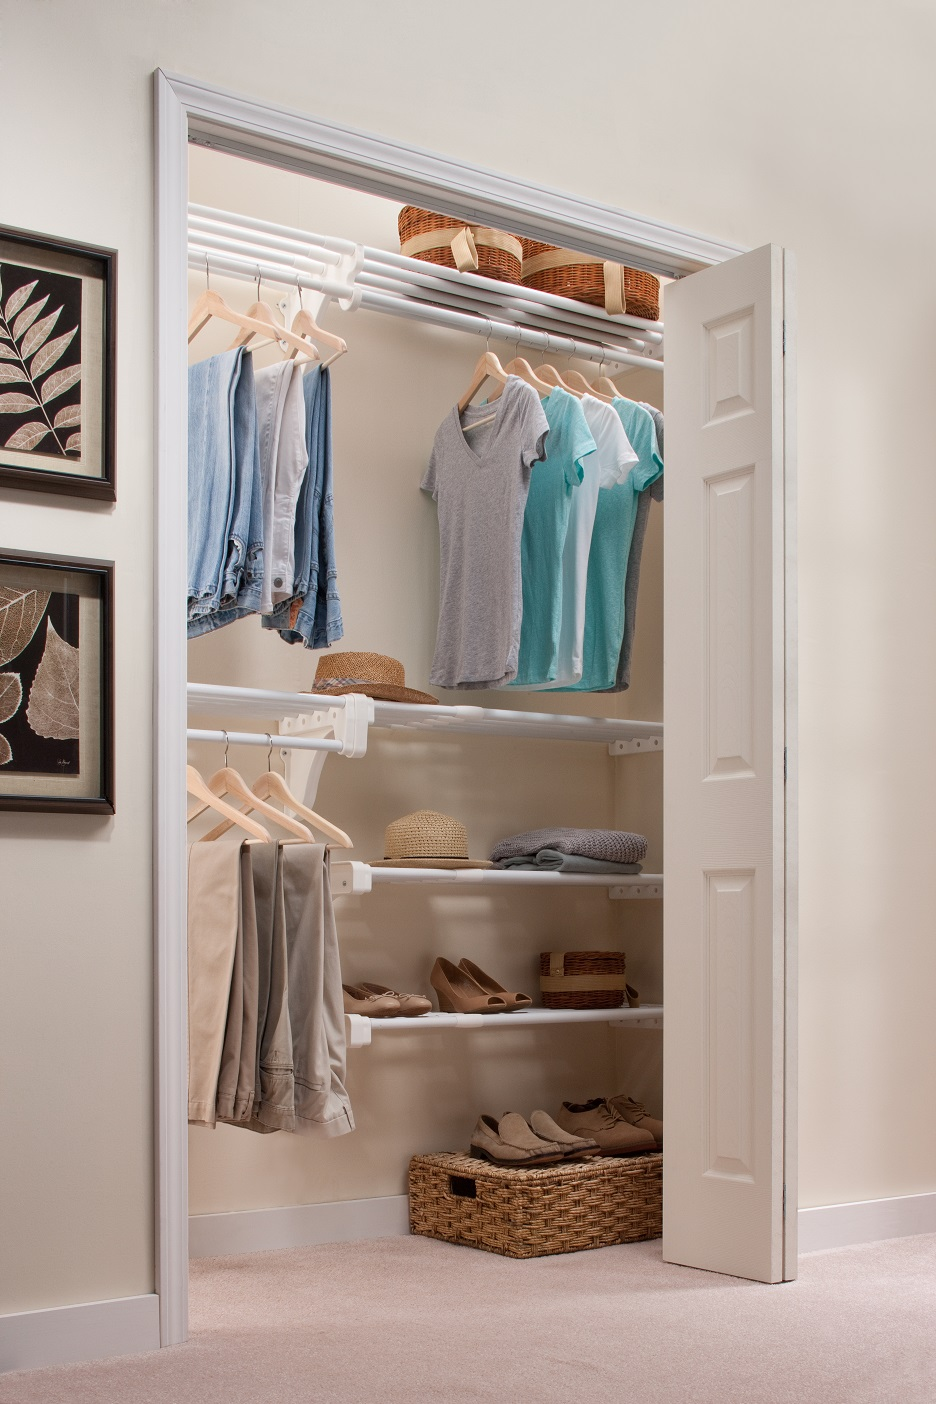 Inspiring Storage System Design Ideas with Cedar Closet Kit: Lowes Tongue And Groove Cedar | Cedar Closet Kit | Cedar Tongue And Groove Lowes